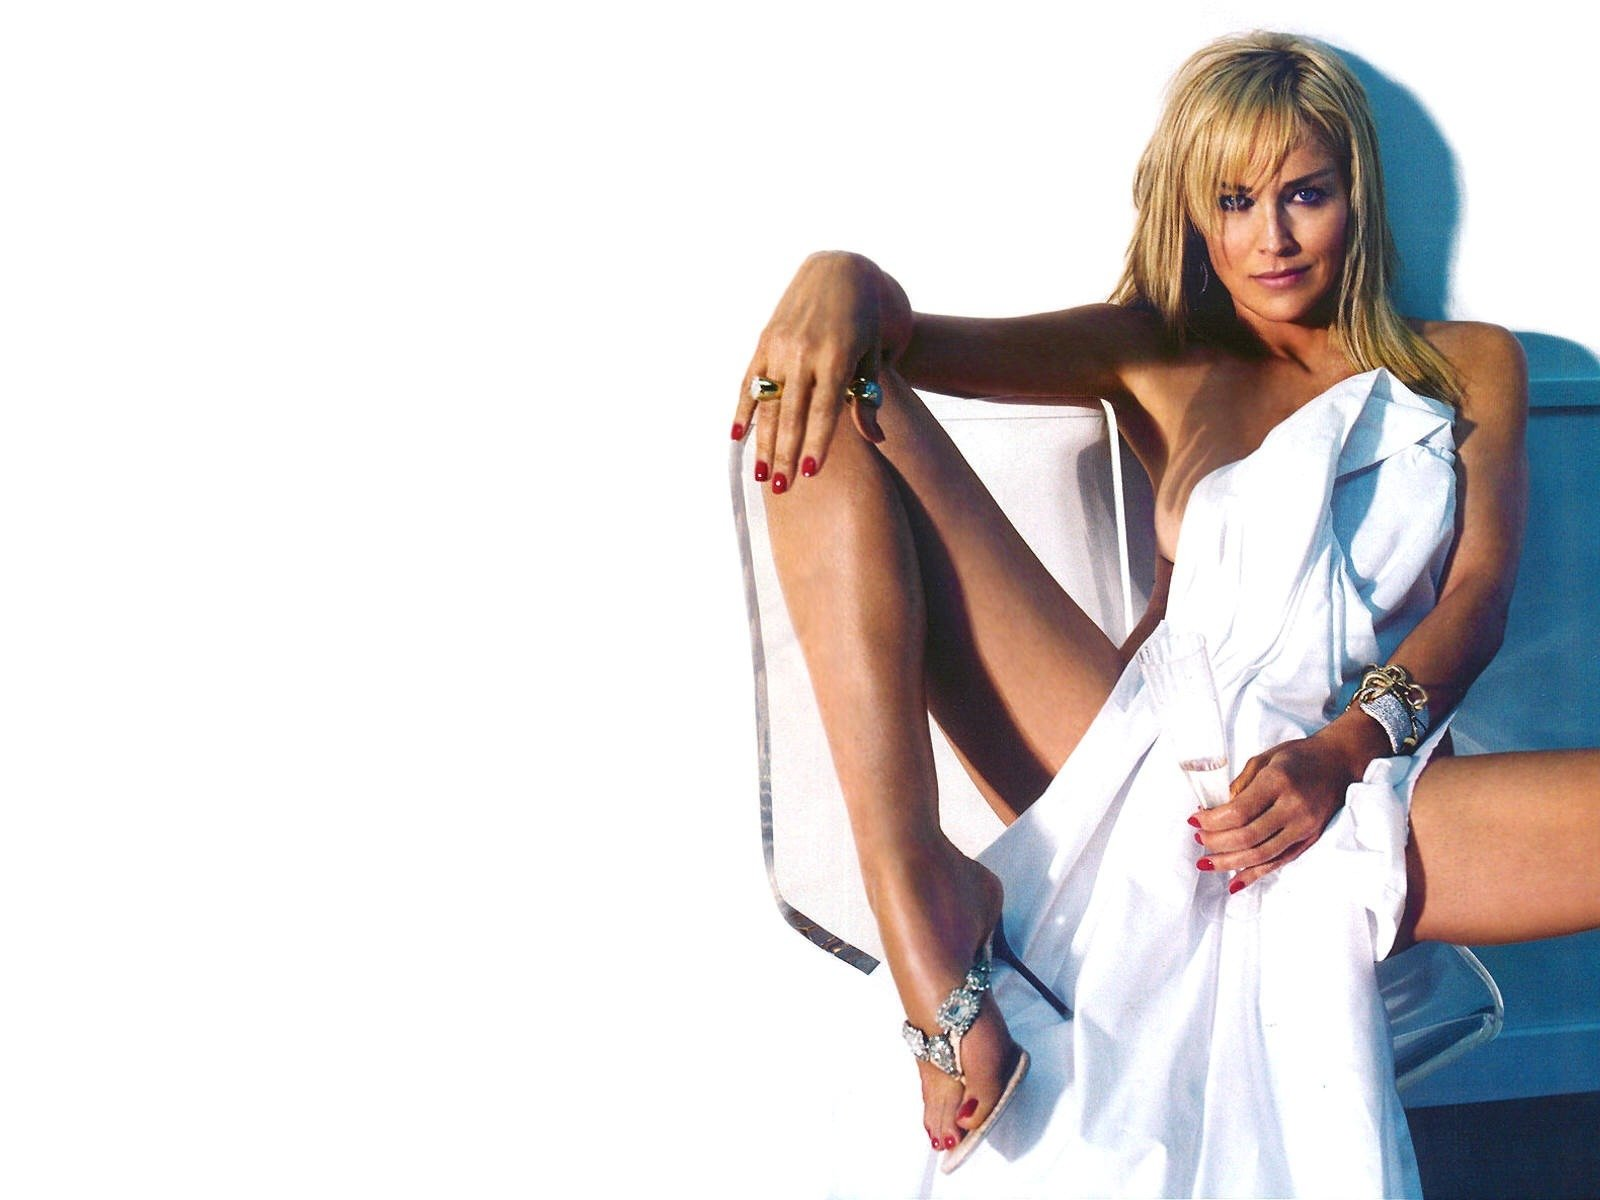 Wallpaper di Sharon Stone, sexy sirena in bianco